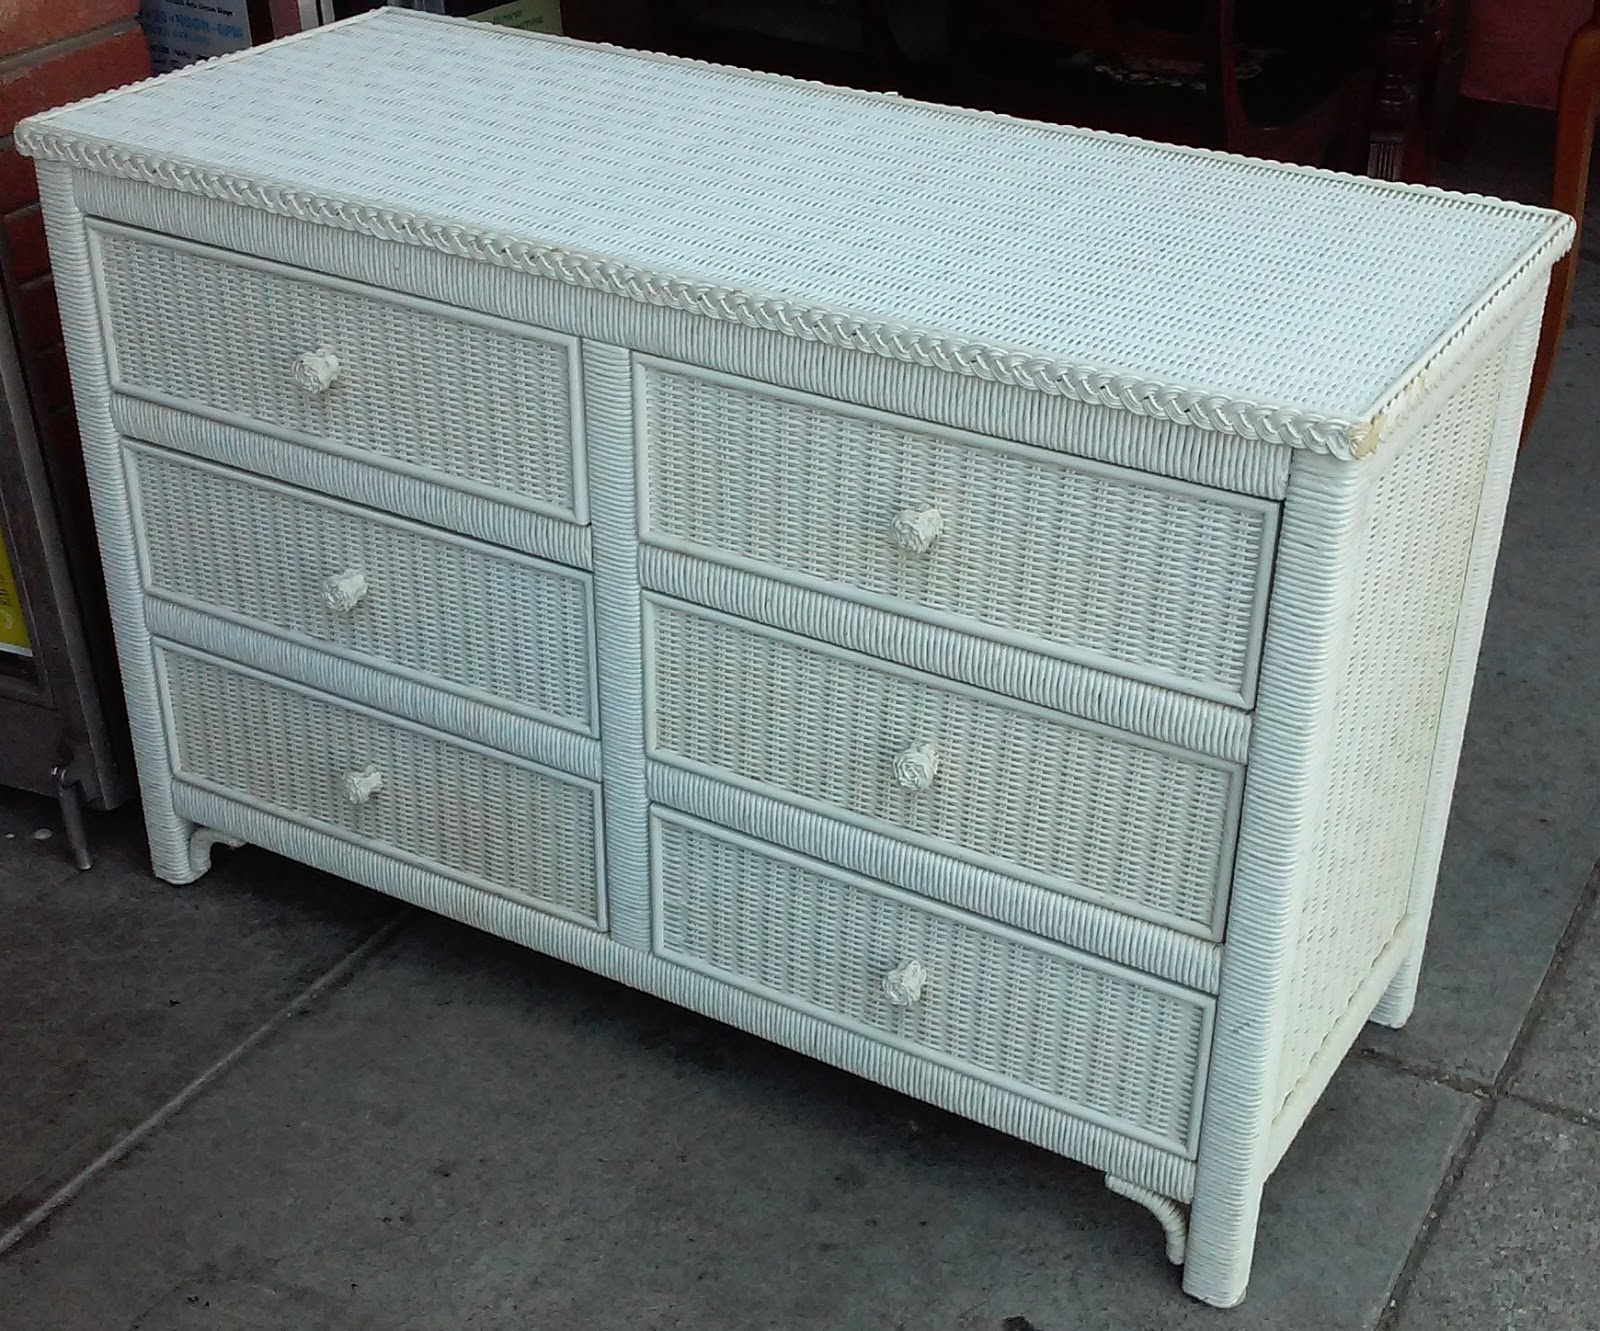 Uhuru Furniture Amp Collectibles Sold 4898 White Wicker 6